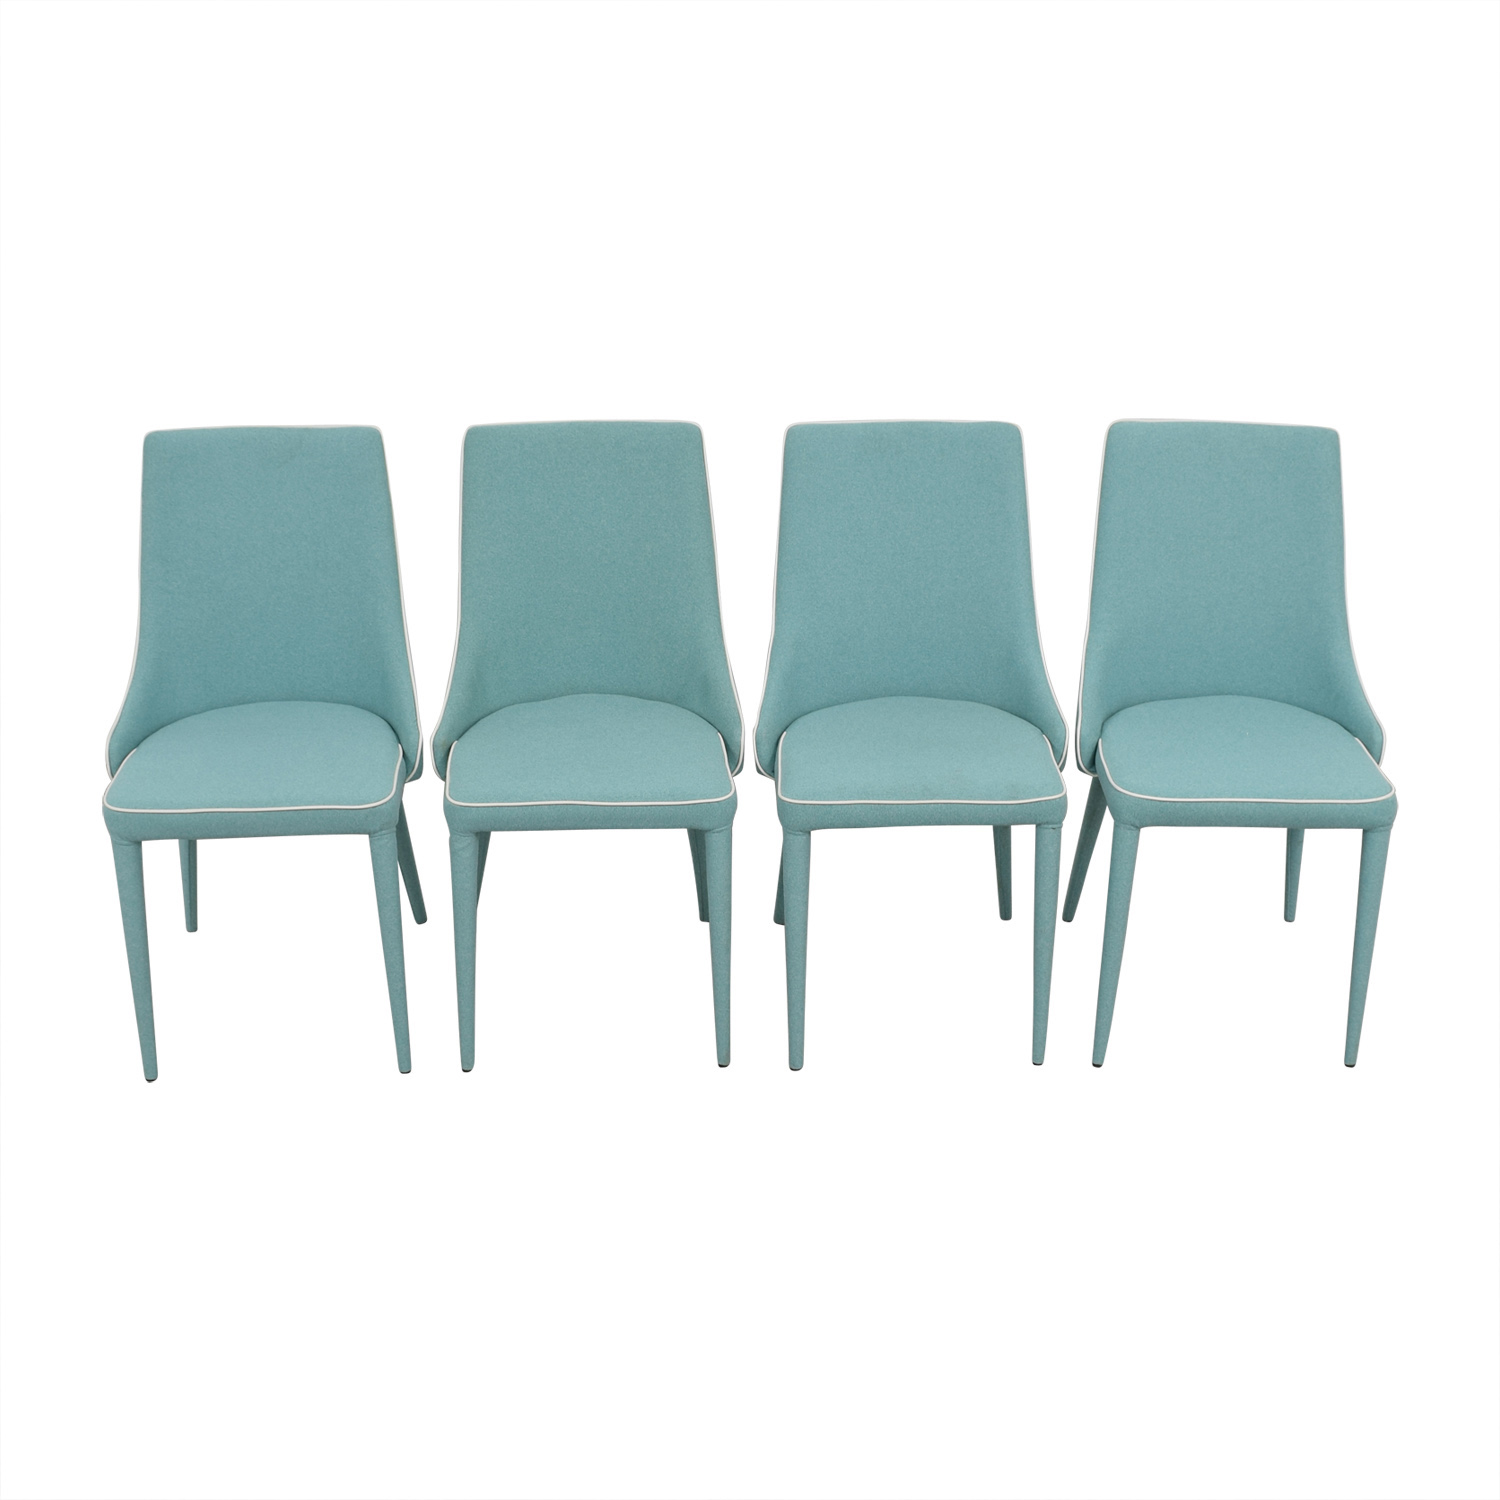 Inmod Inmod Turquoise Fabric Chair for sale